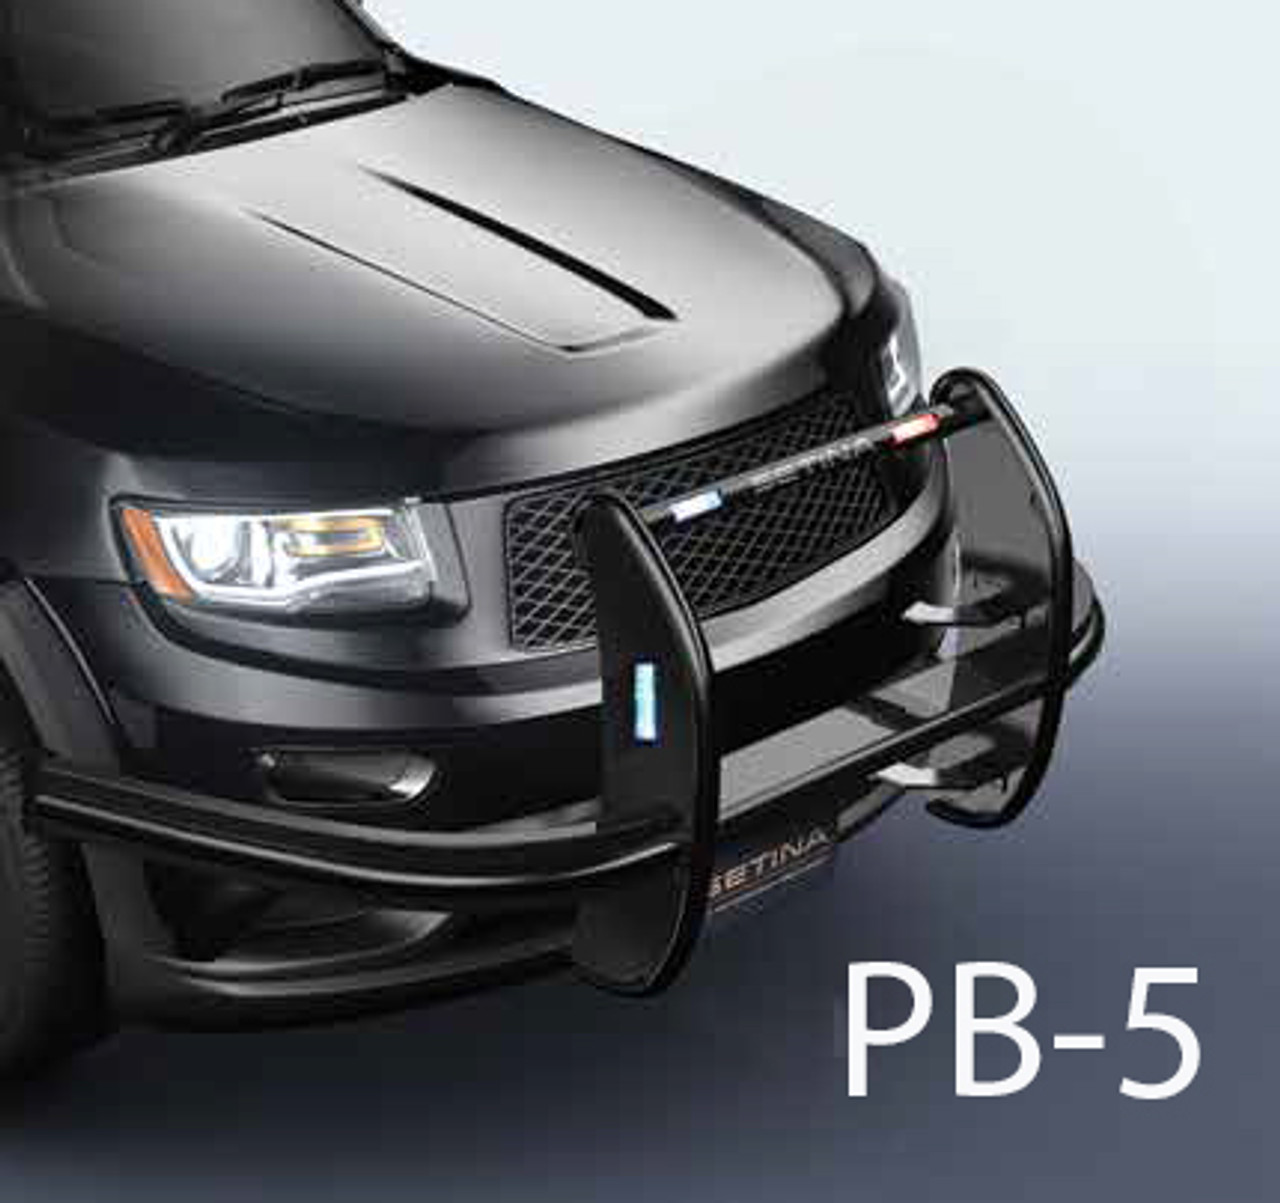 Setina Push Bar Pb400 Brush Guard For Dodge Charger 2015 2020 Optional Headlight Protection Bars Choose